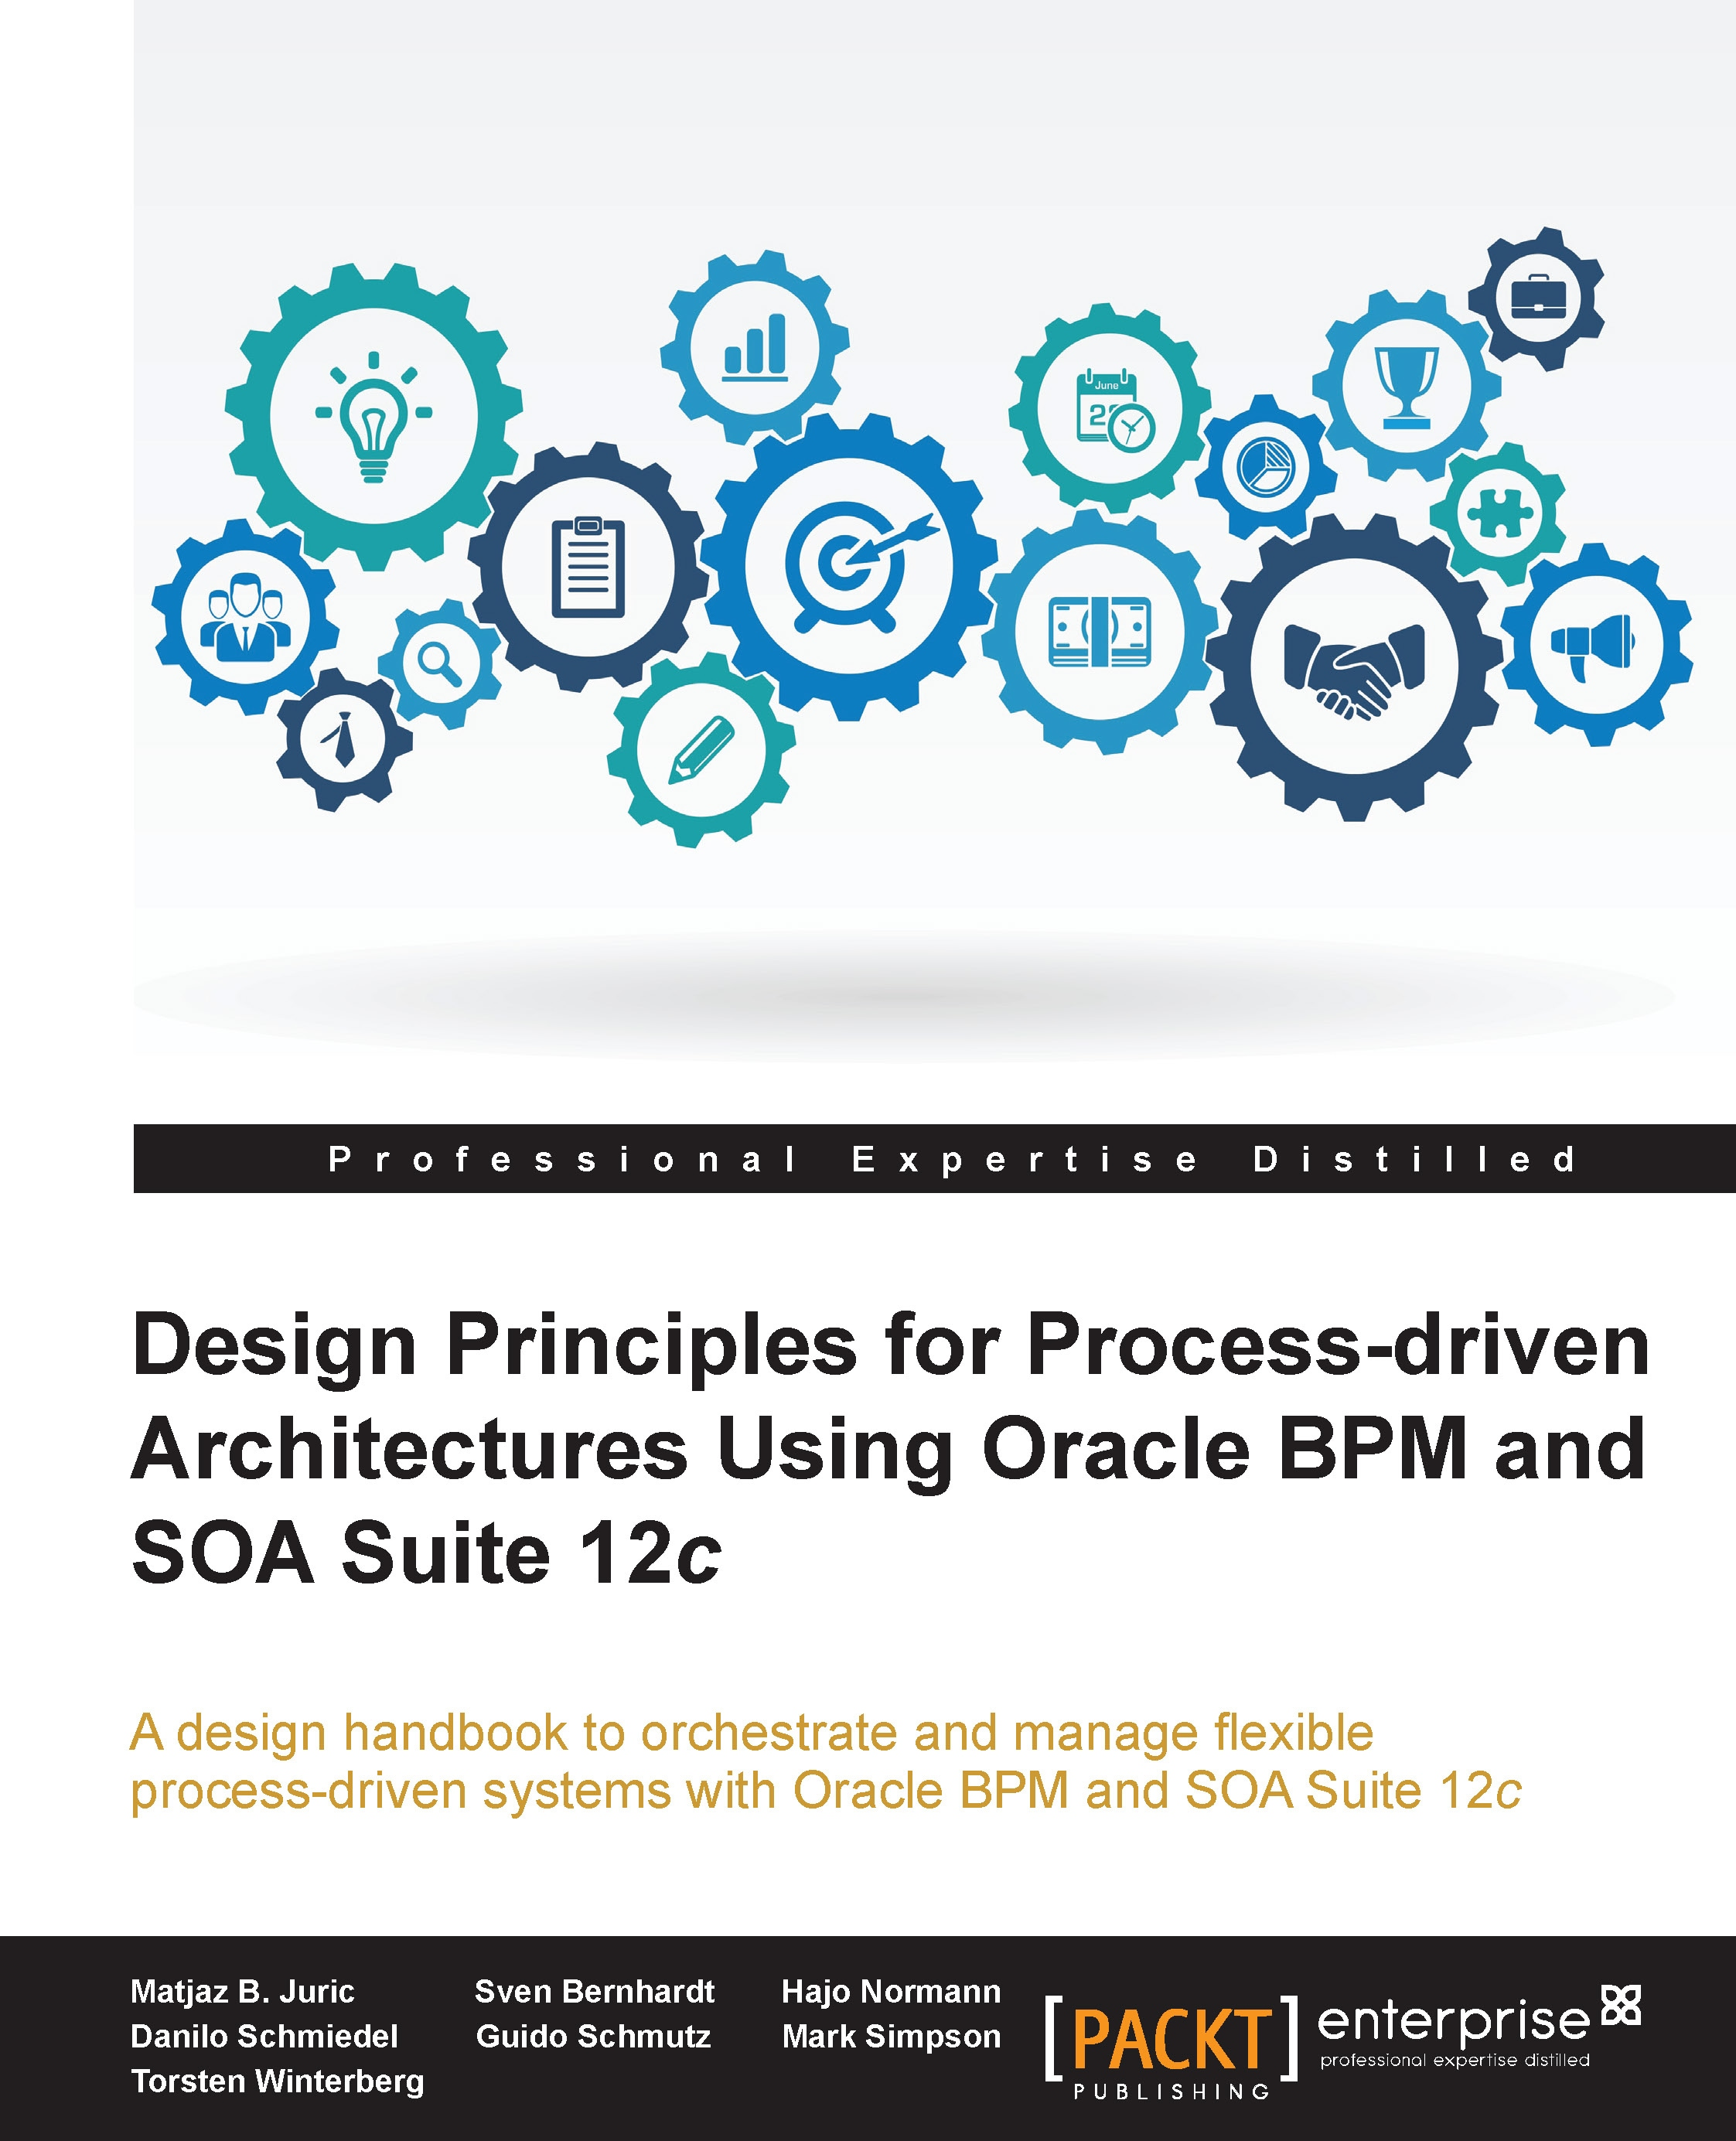 Design Principles for Process-driven Architectures Using Oracle BPM and SOA Suite 12c book cover